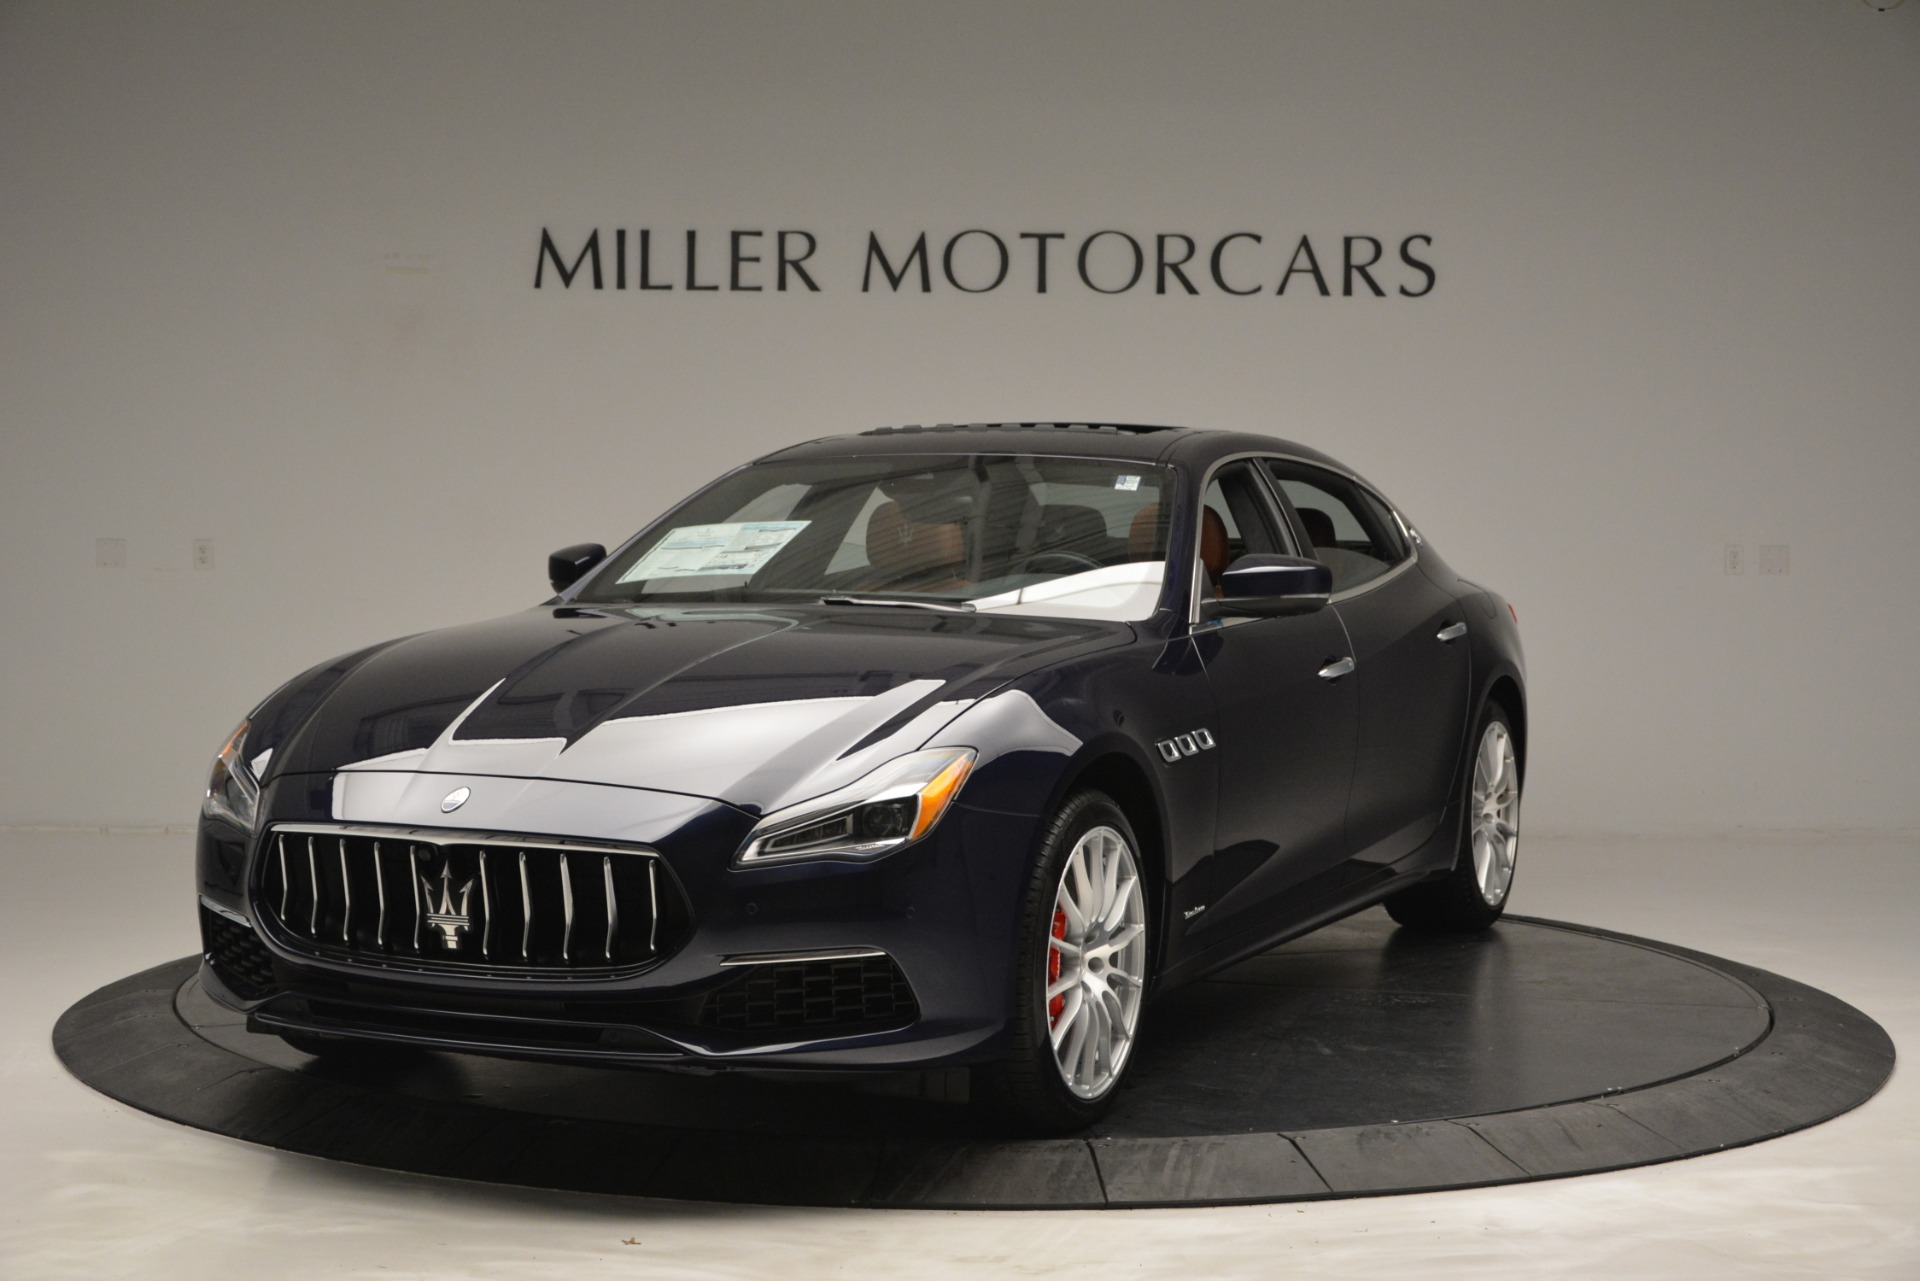 New 2019 Maserati Quattroporte S Q4 GranLusso For Sale In Greenwich, CT 2620_main